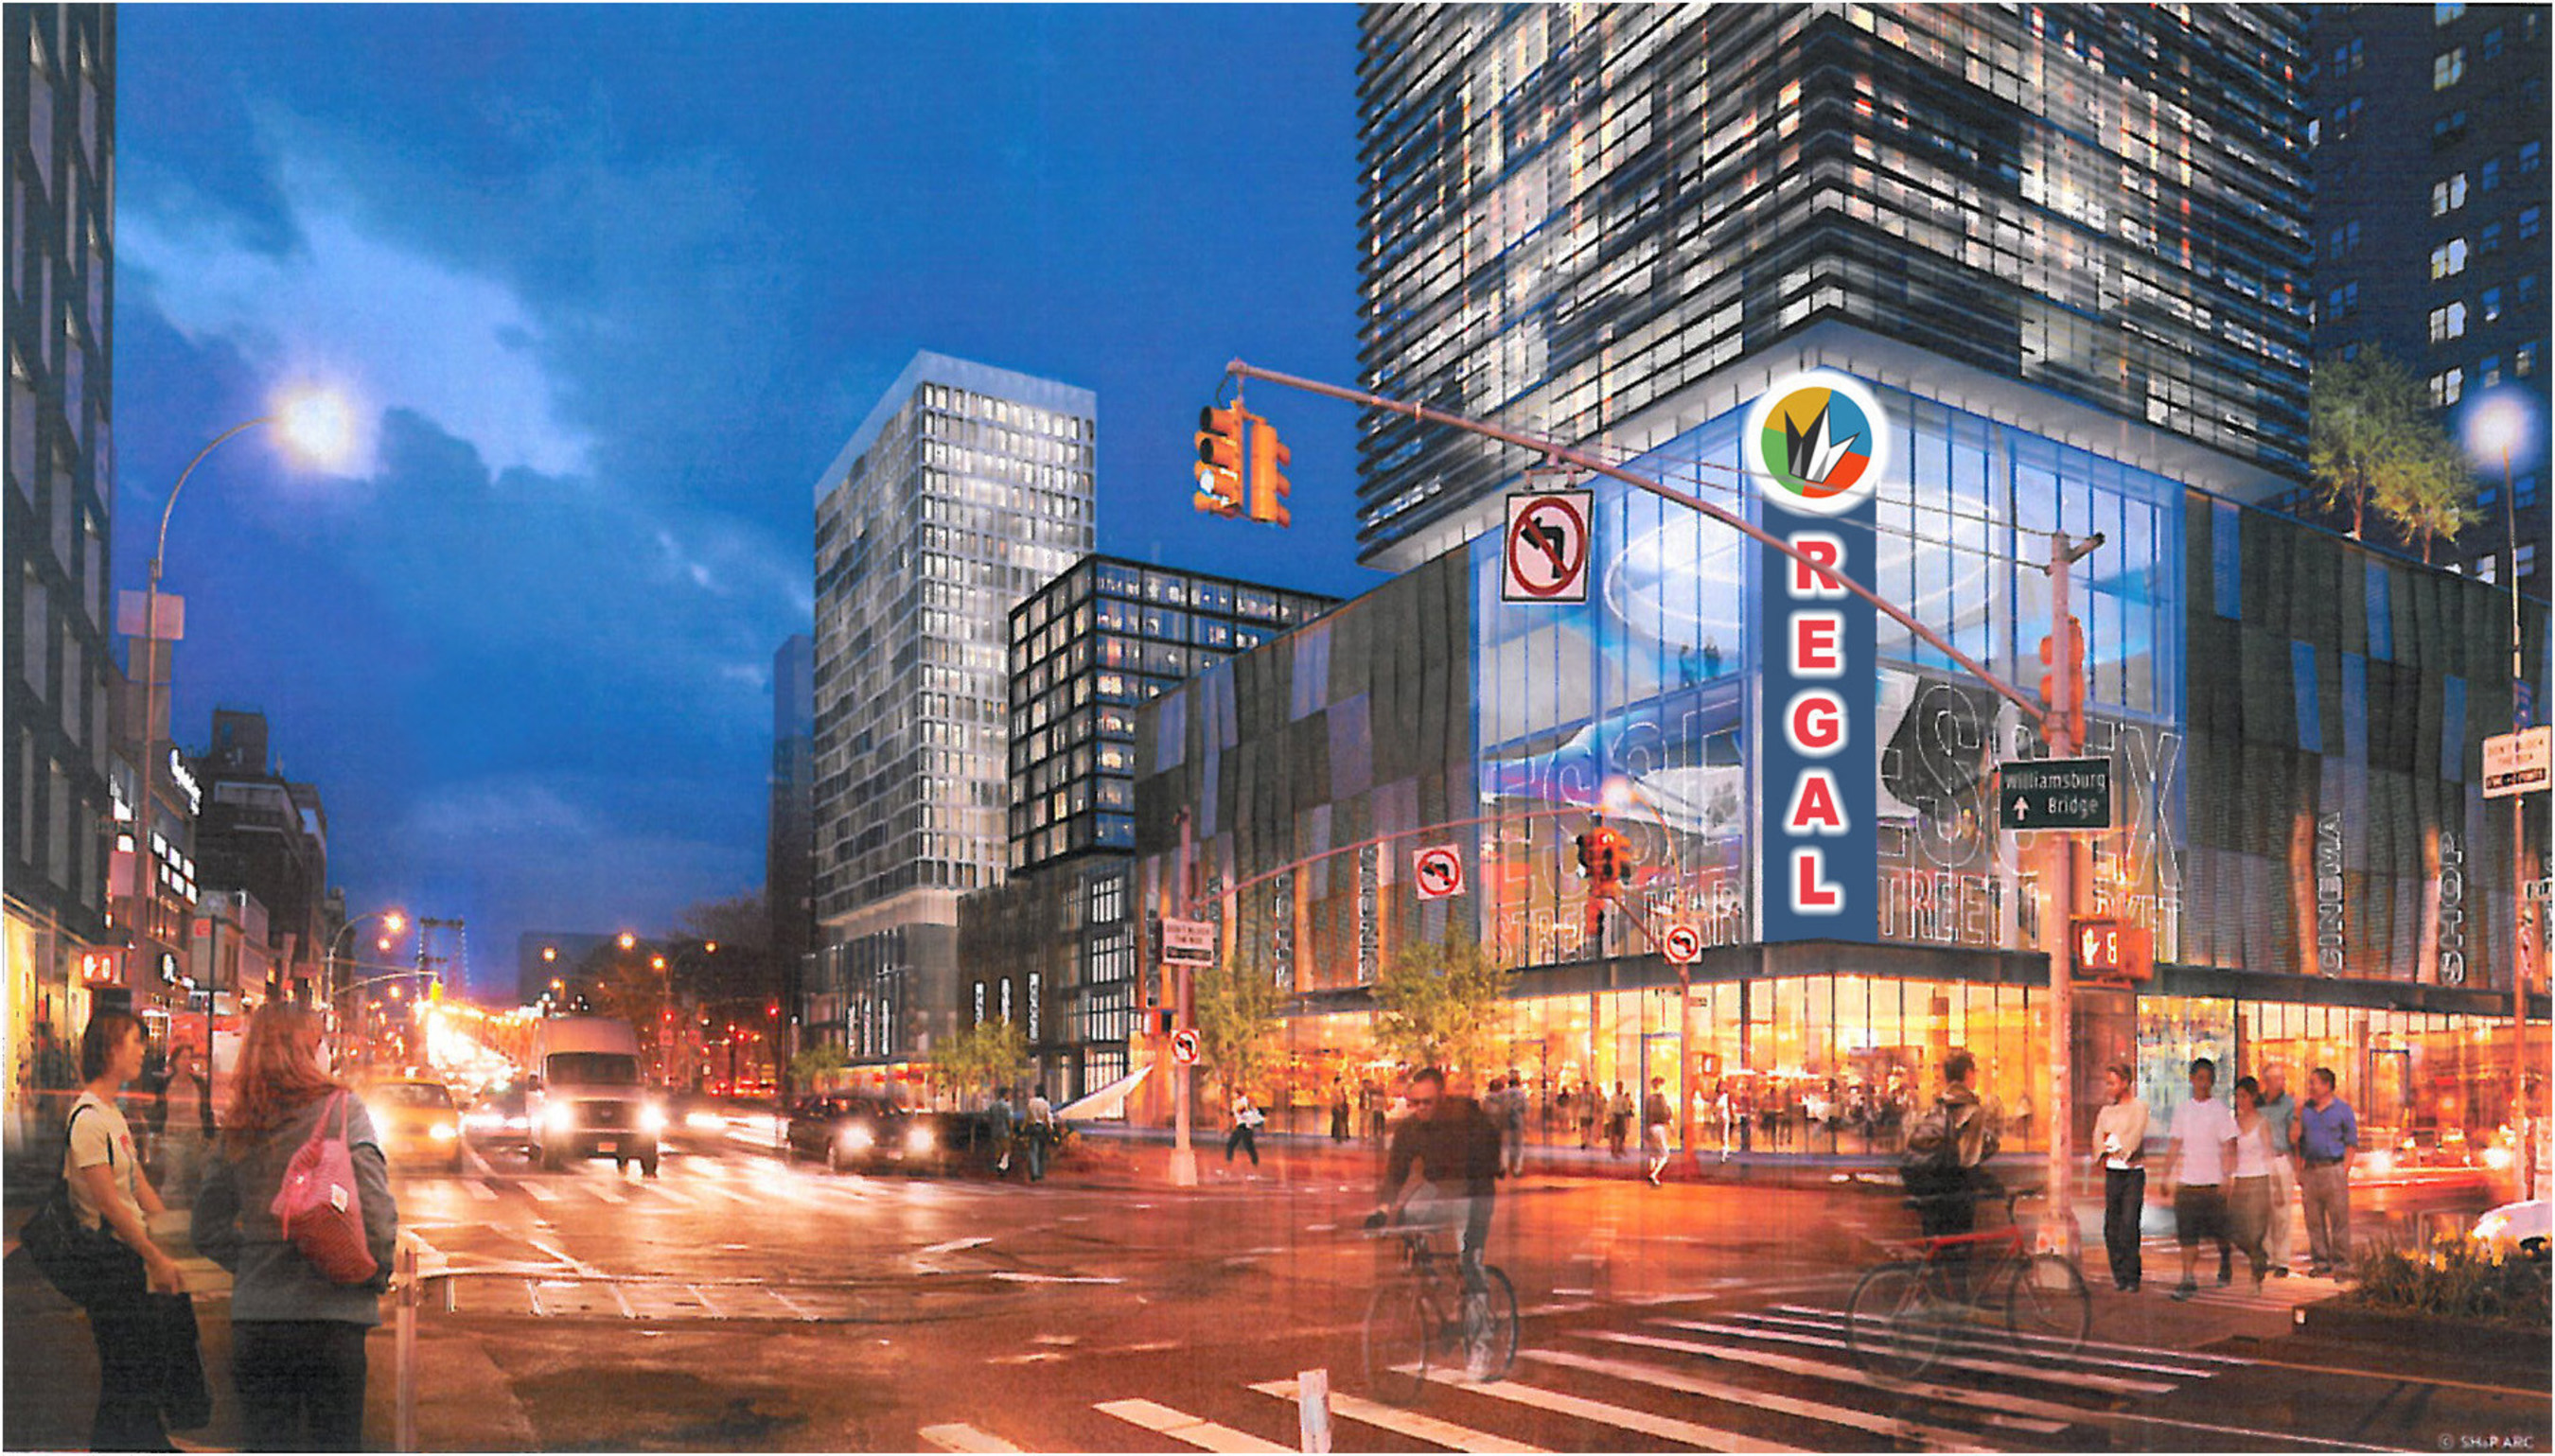 Regal Entertainment Group announces construction plans for a new Regal Cinemas in Manhattan with luxurious recliners in every auditorium. Image Source: Delancey Street Associates